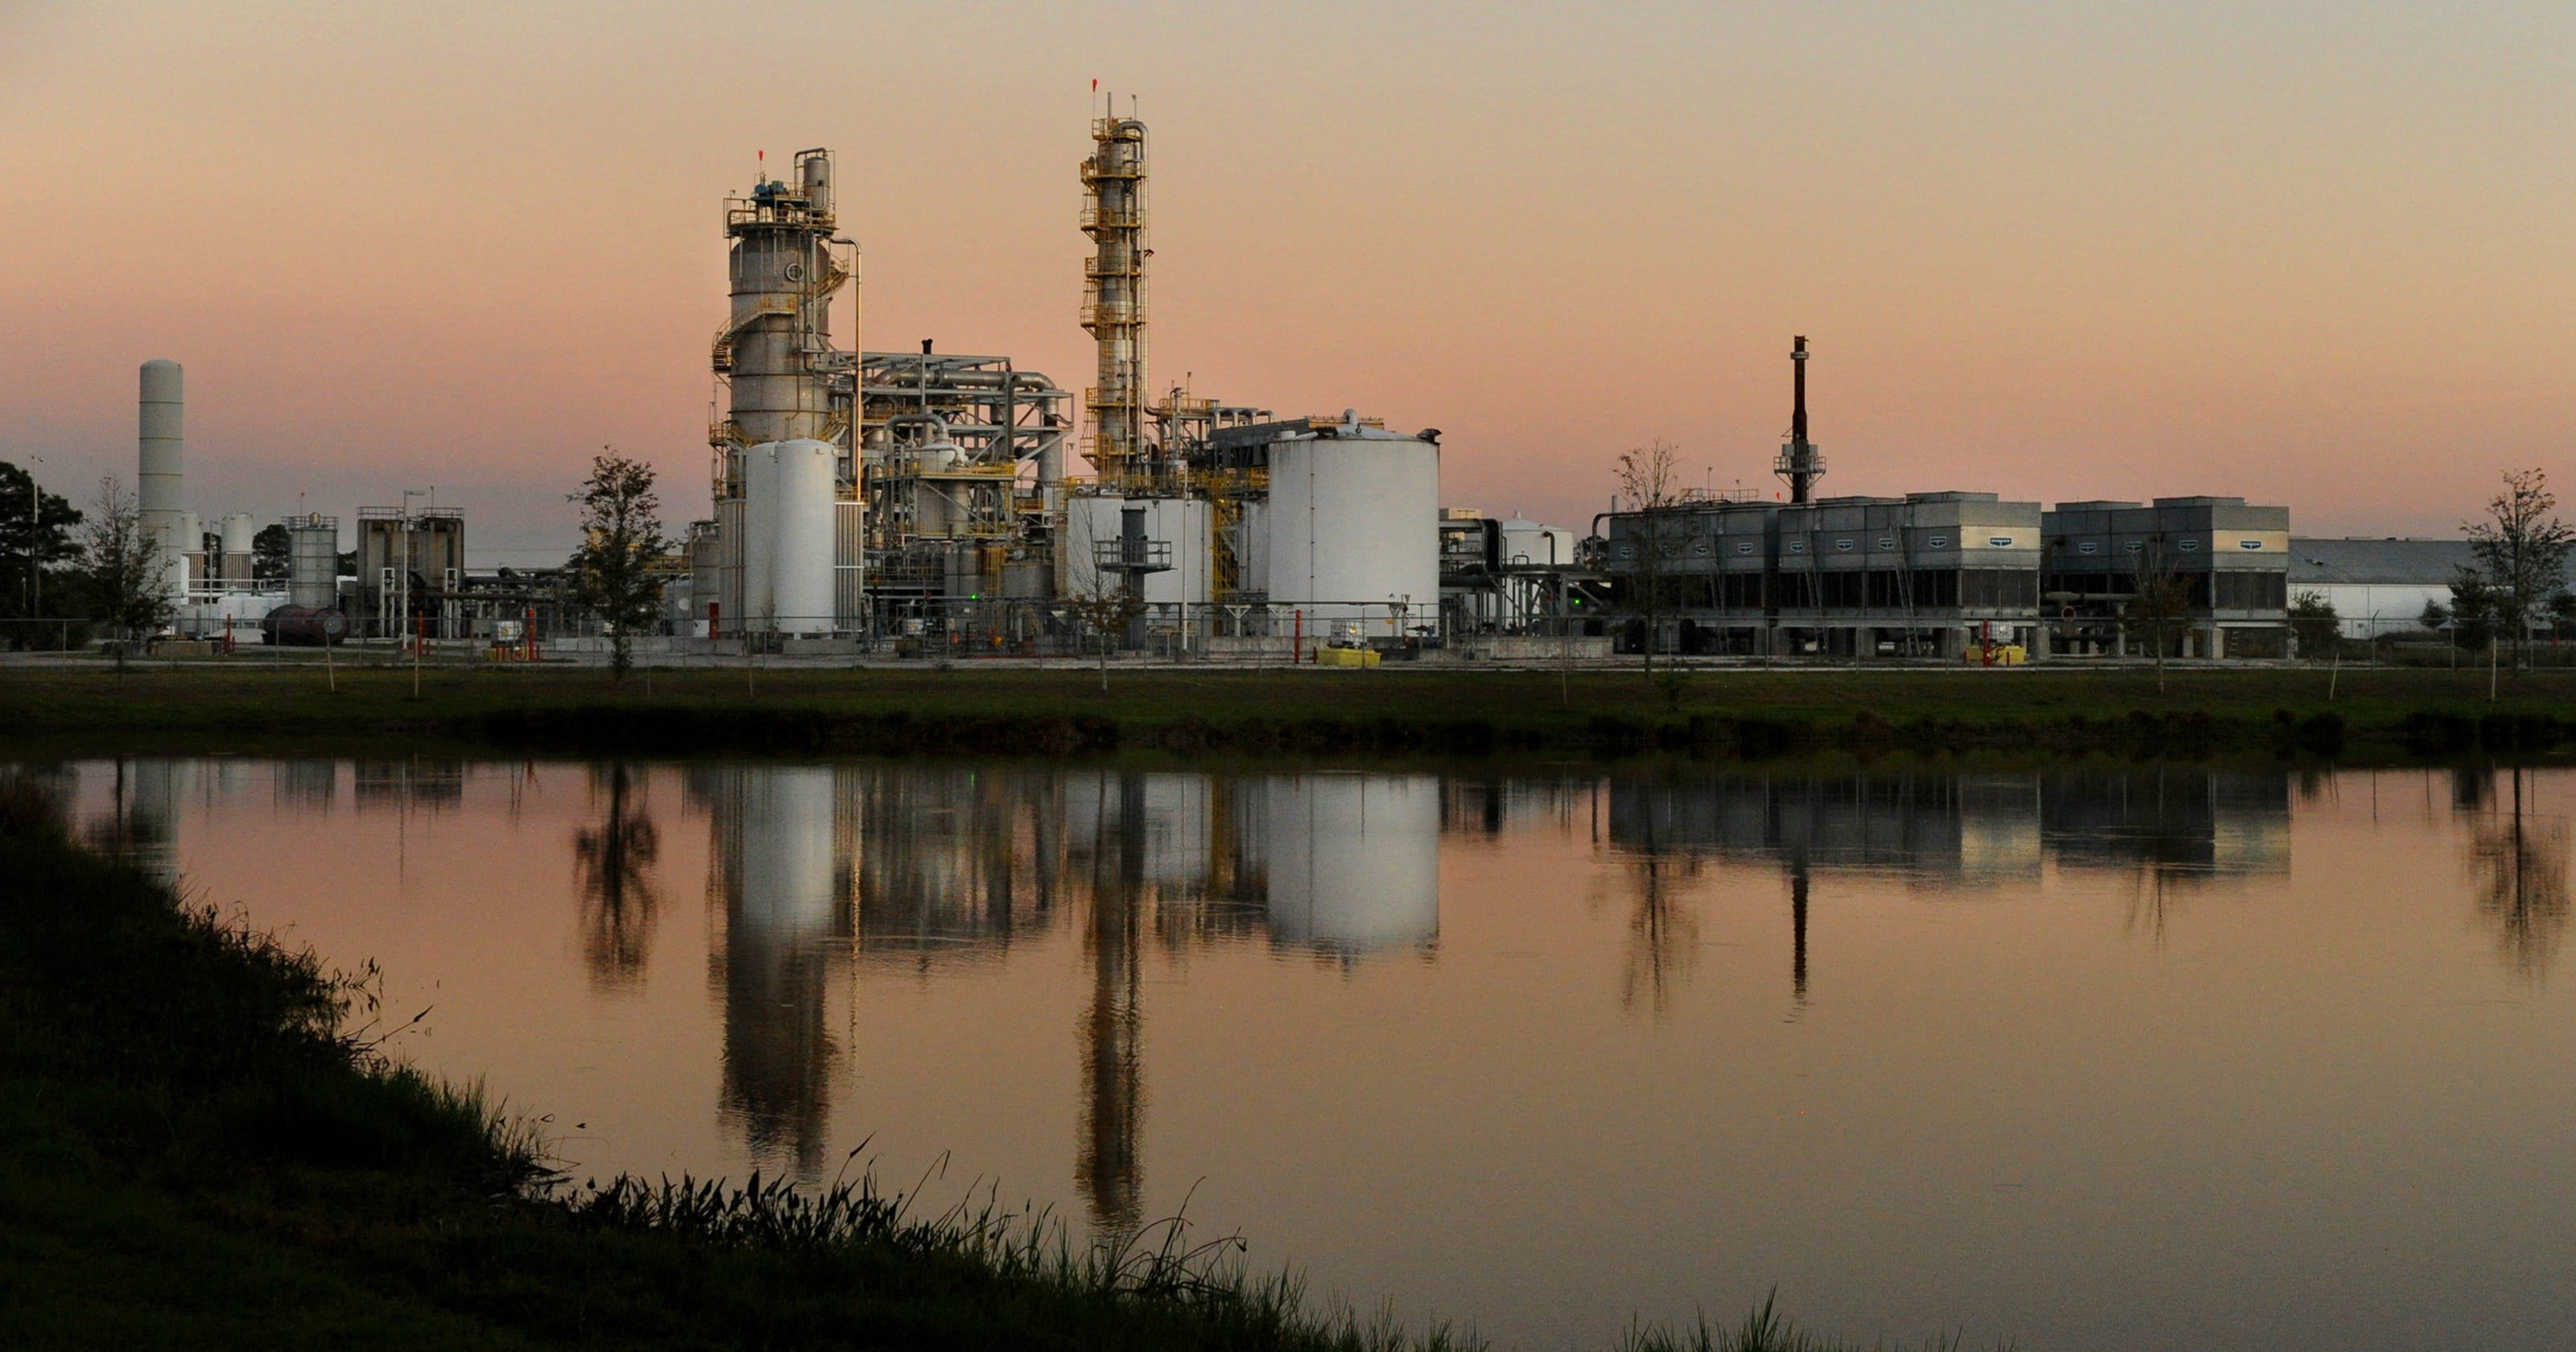 Will new owners of former INEOS plant succeed with bio-energy plans?